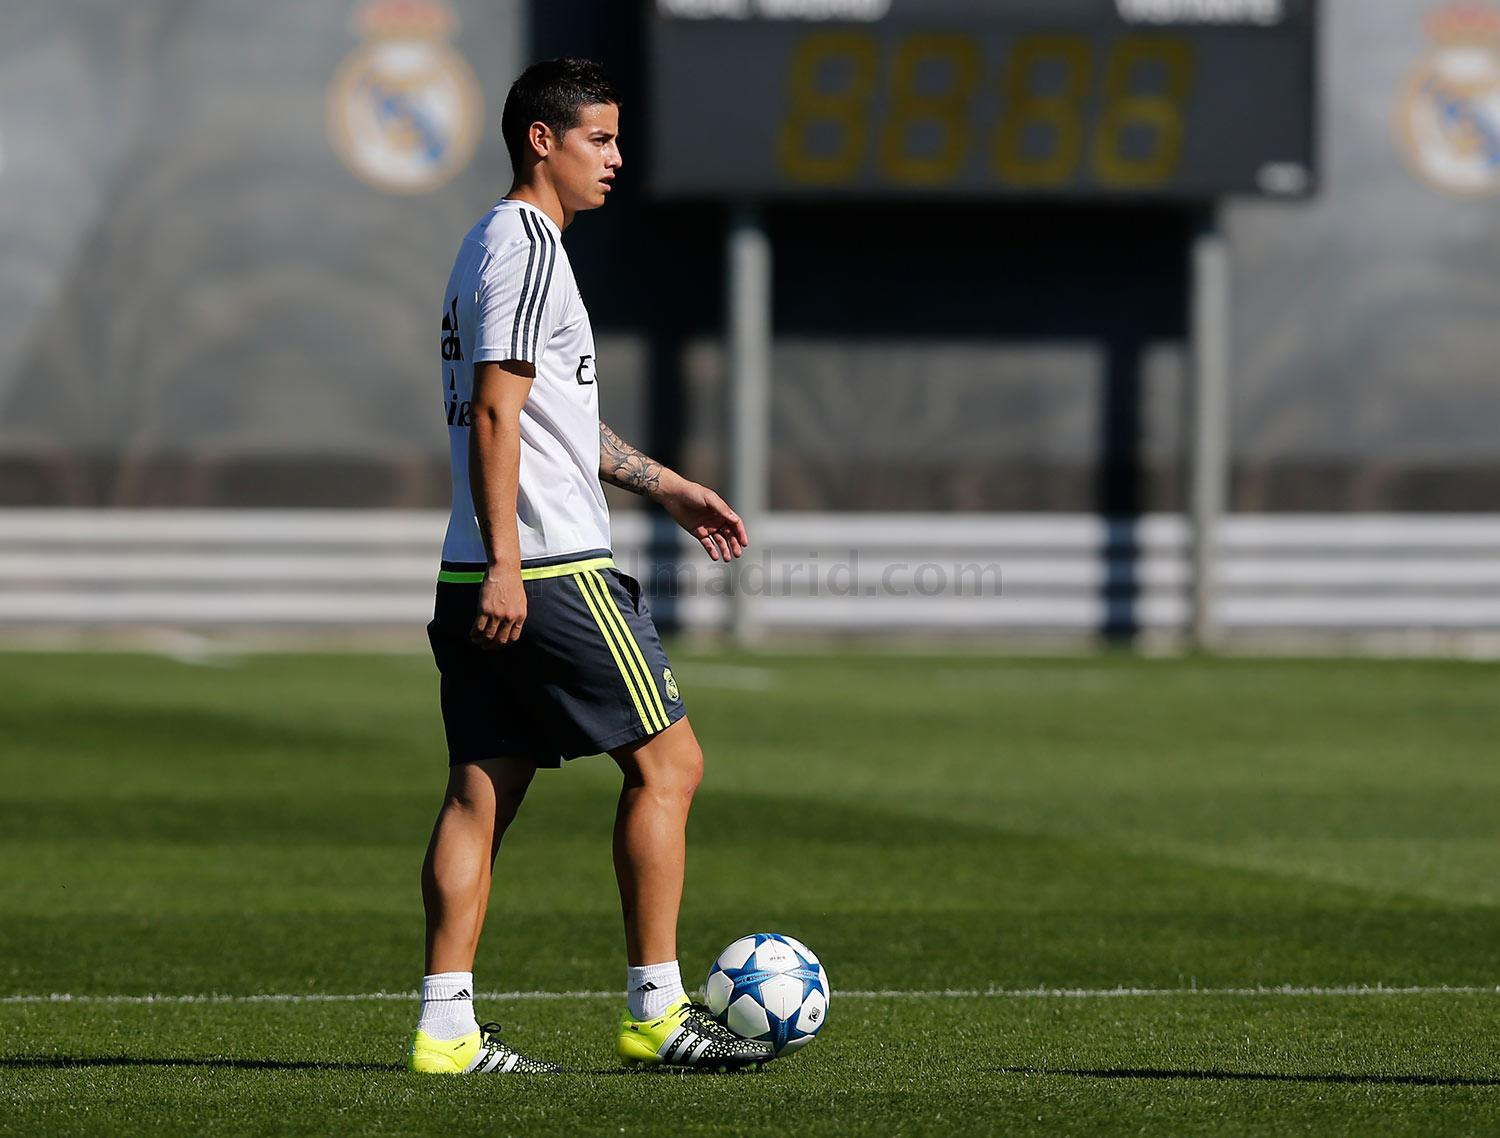 Real Madrid - Entrenamiento del Real Madrid - 25-09-2015